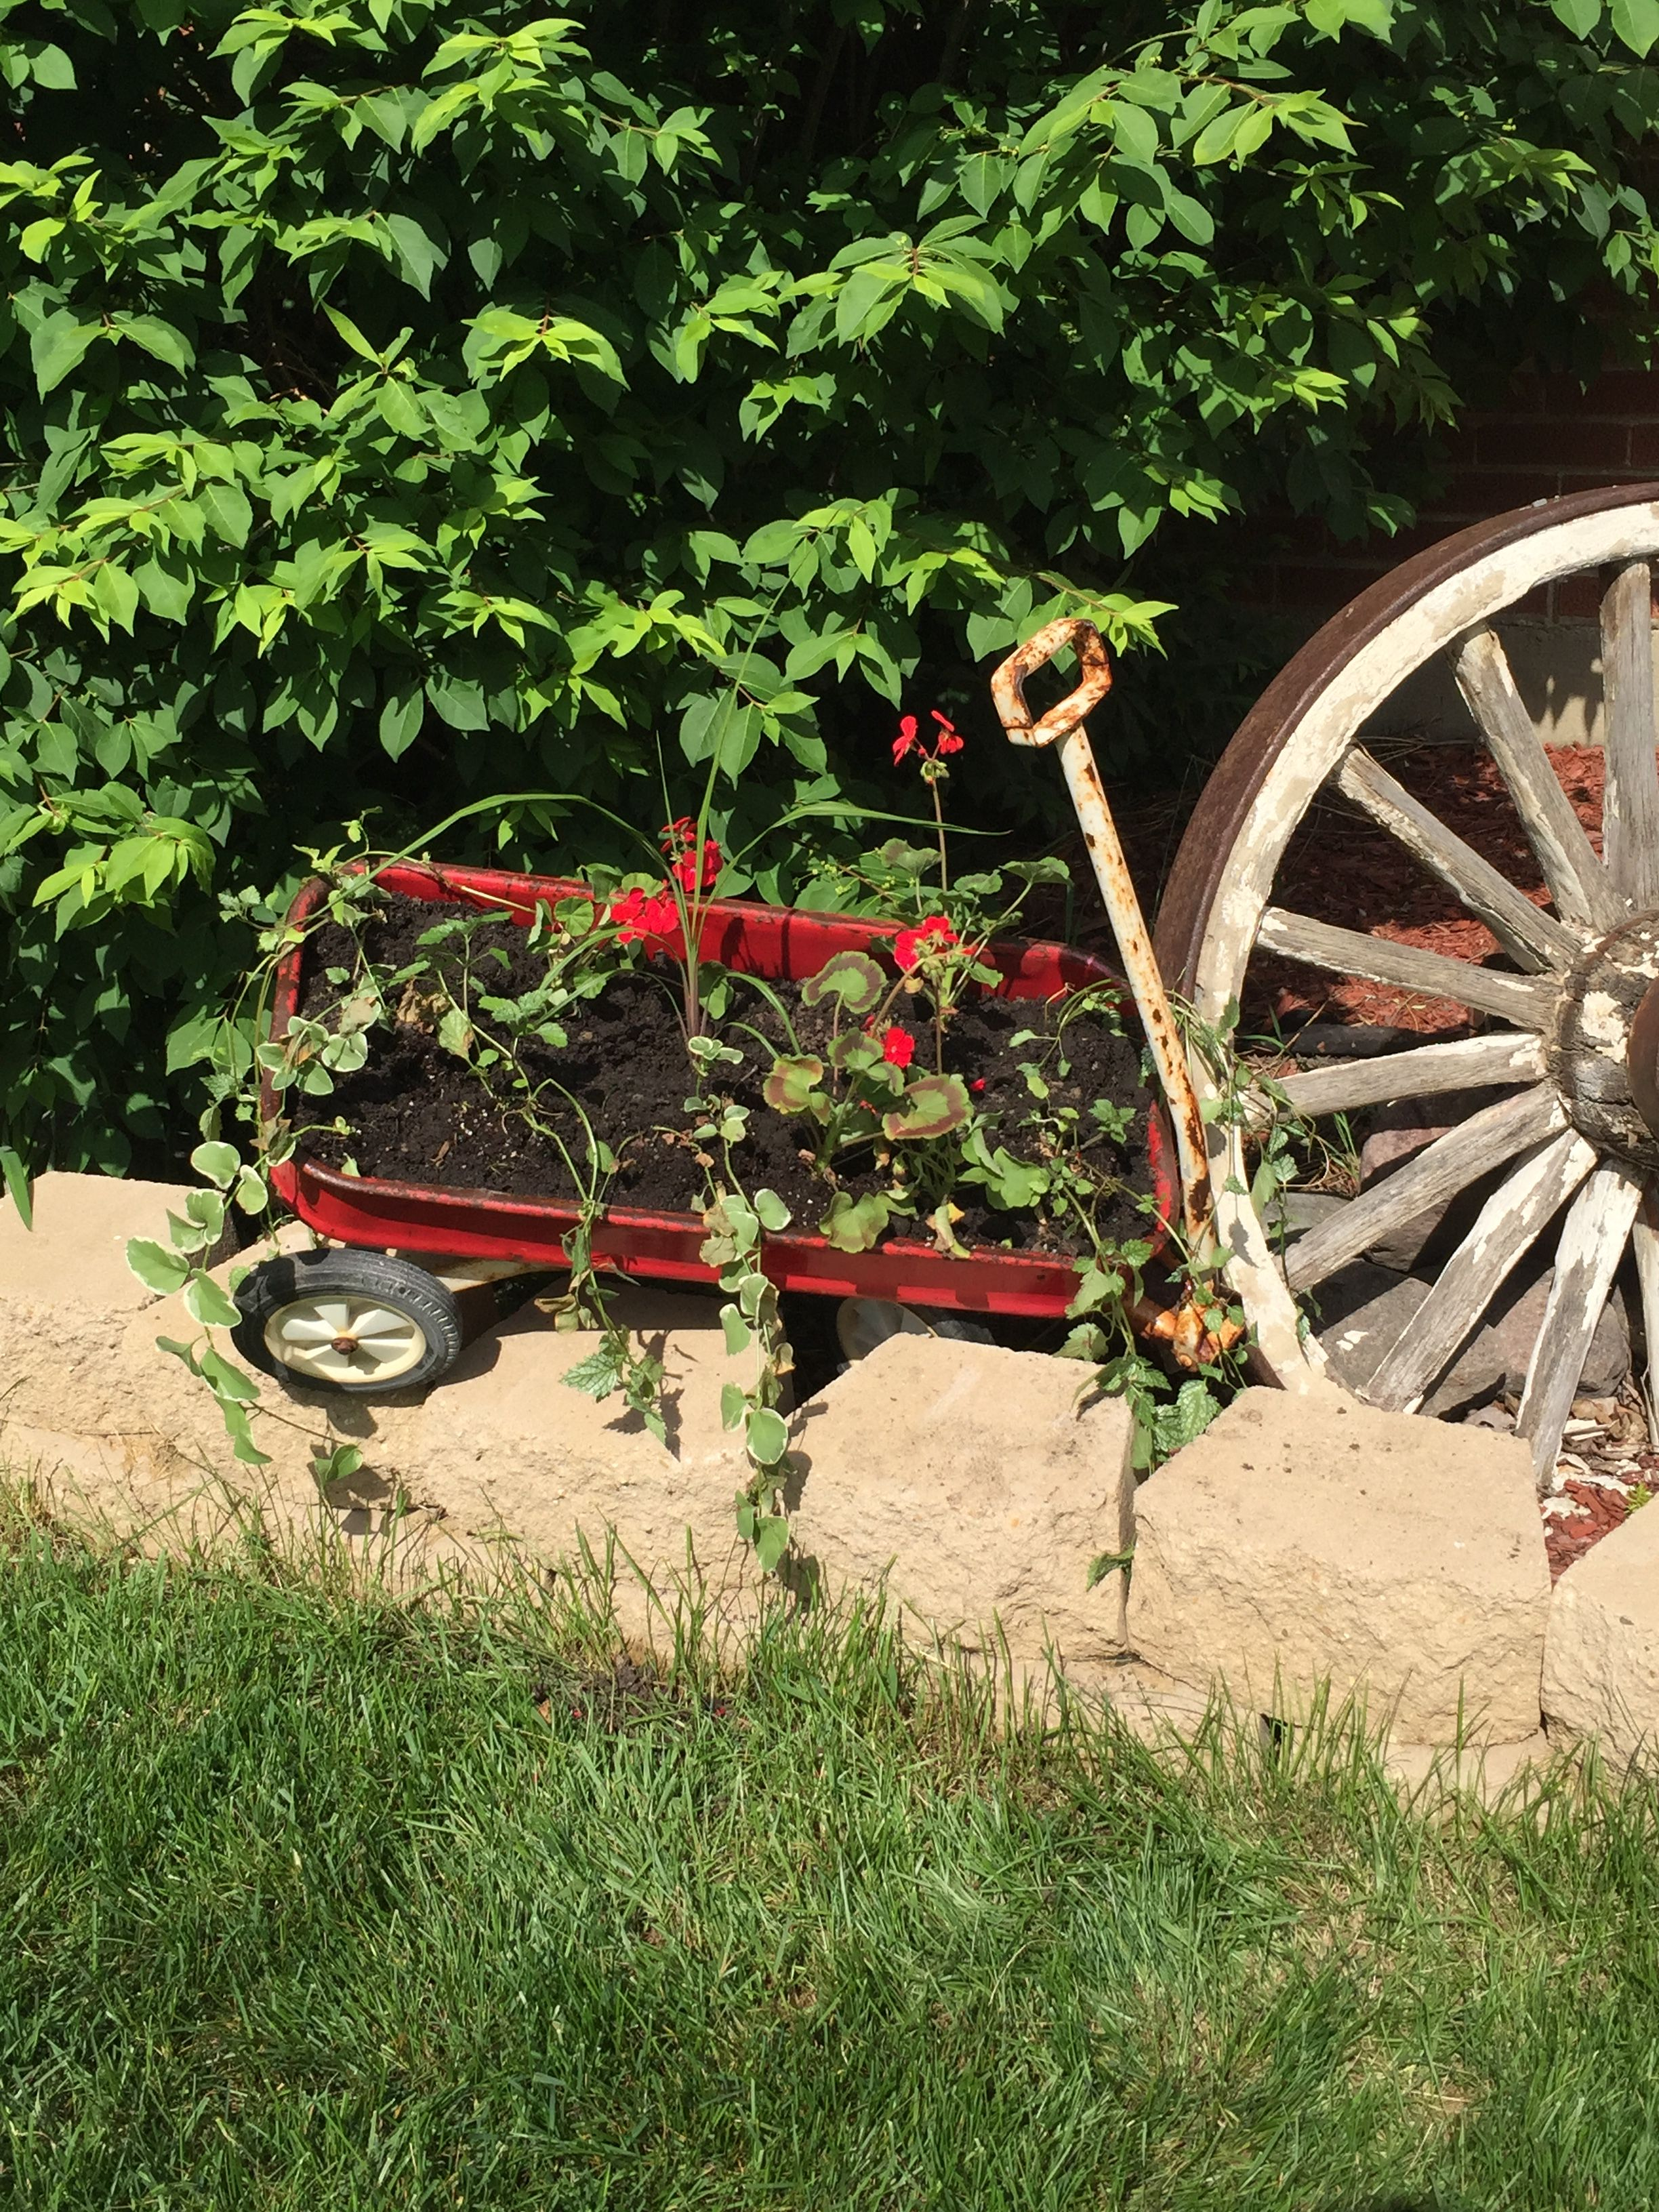 Pin by Rich Guenther on Our Yard | Yard, Moped, Garden